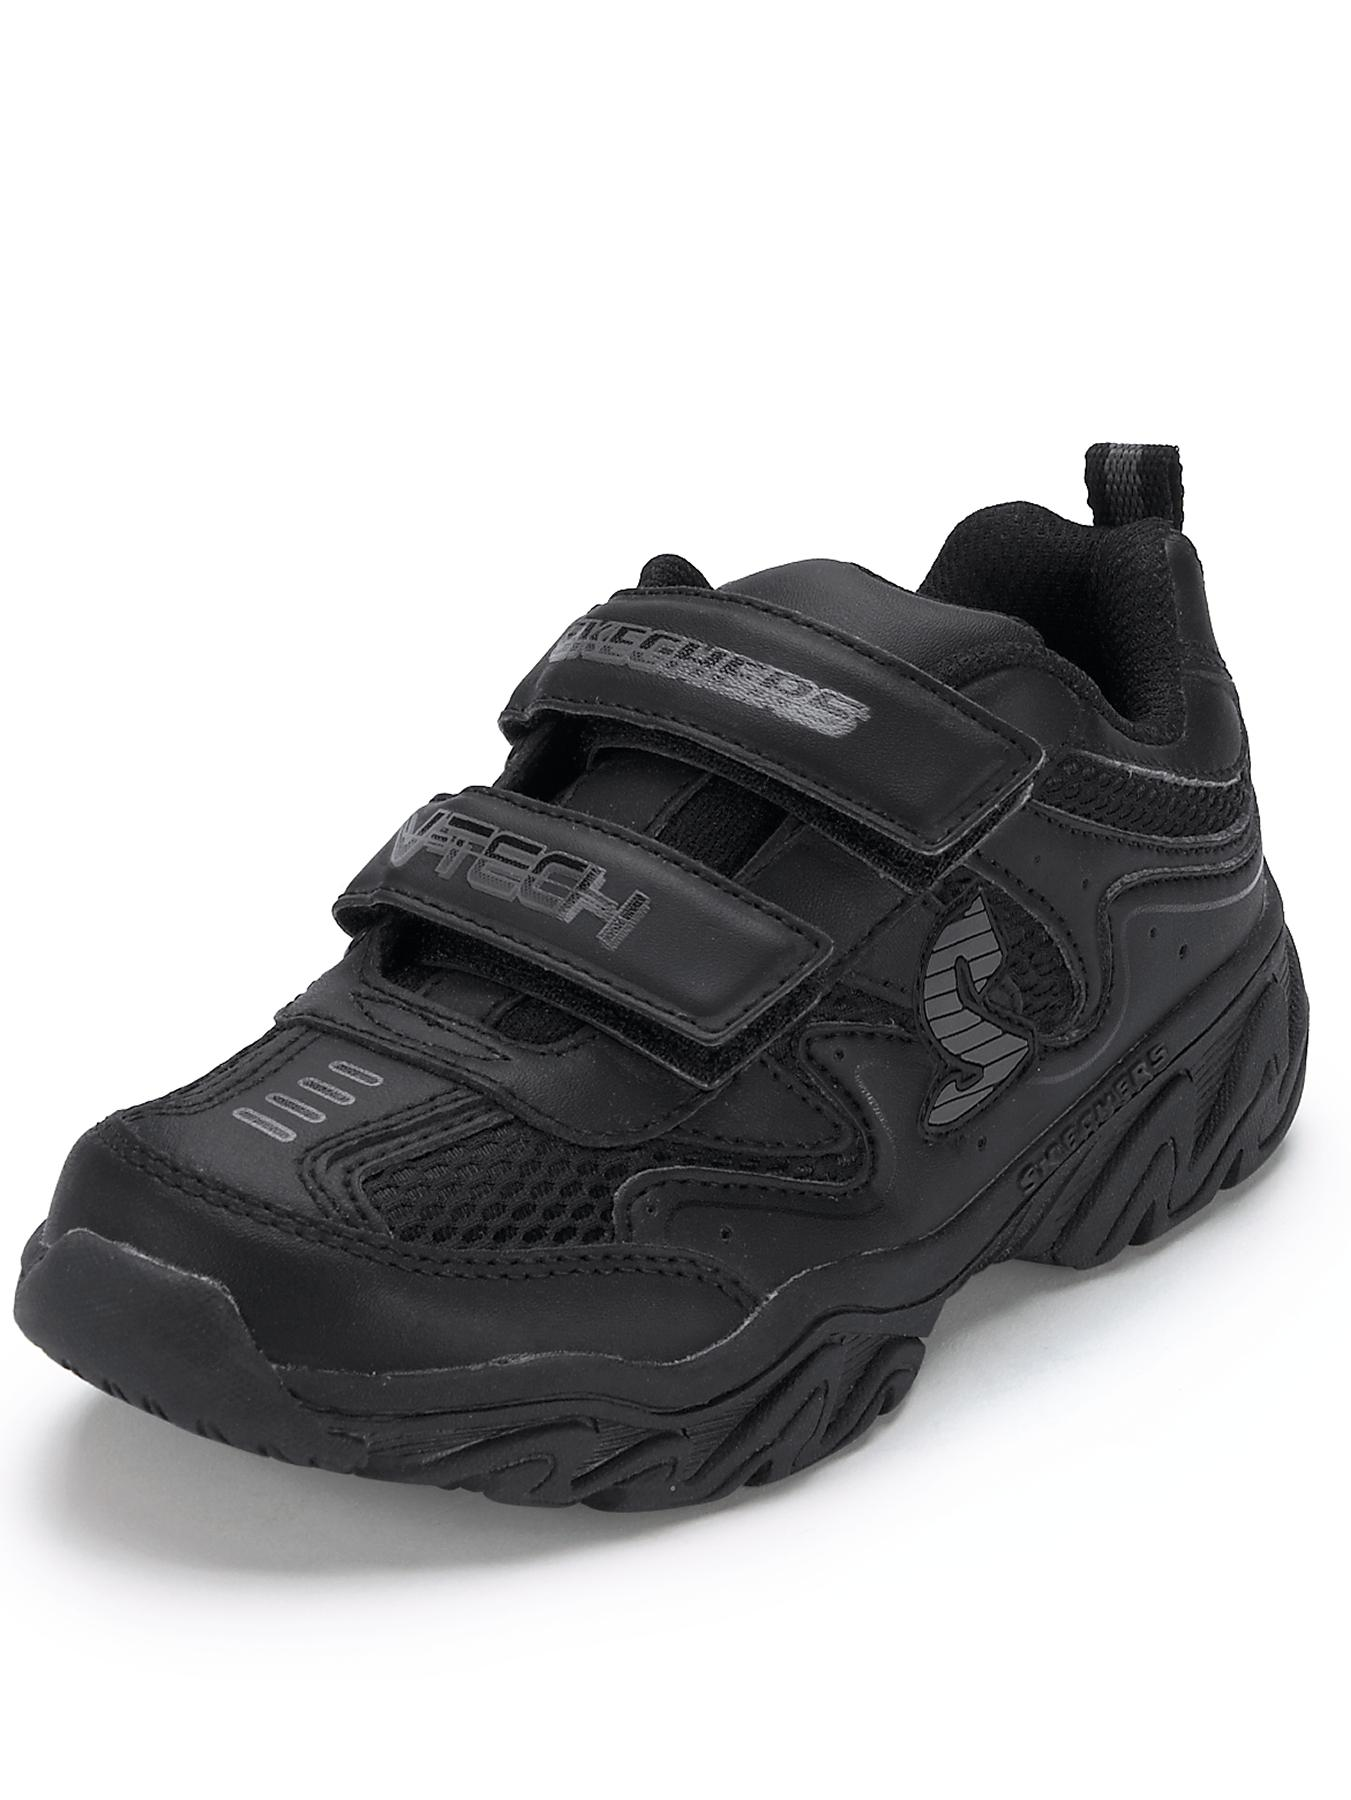 Boys Ragged Dox Trainers, Black